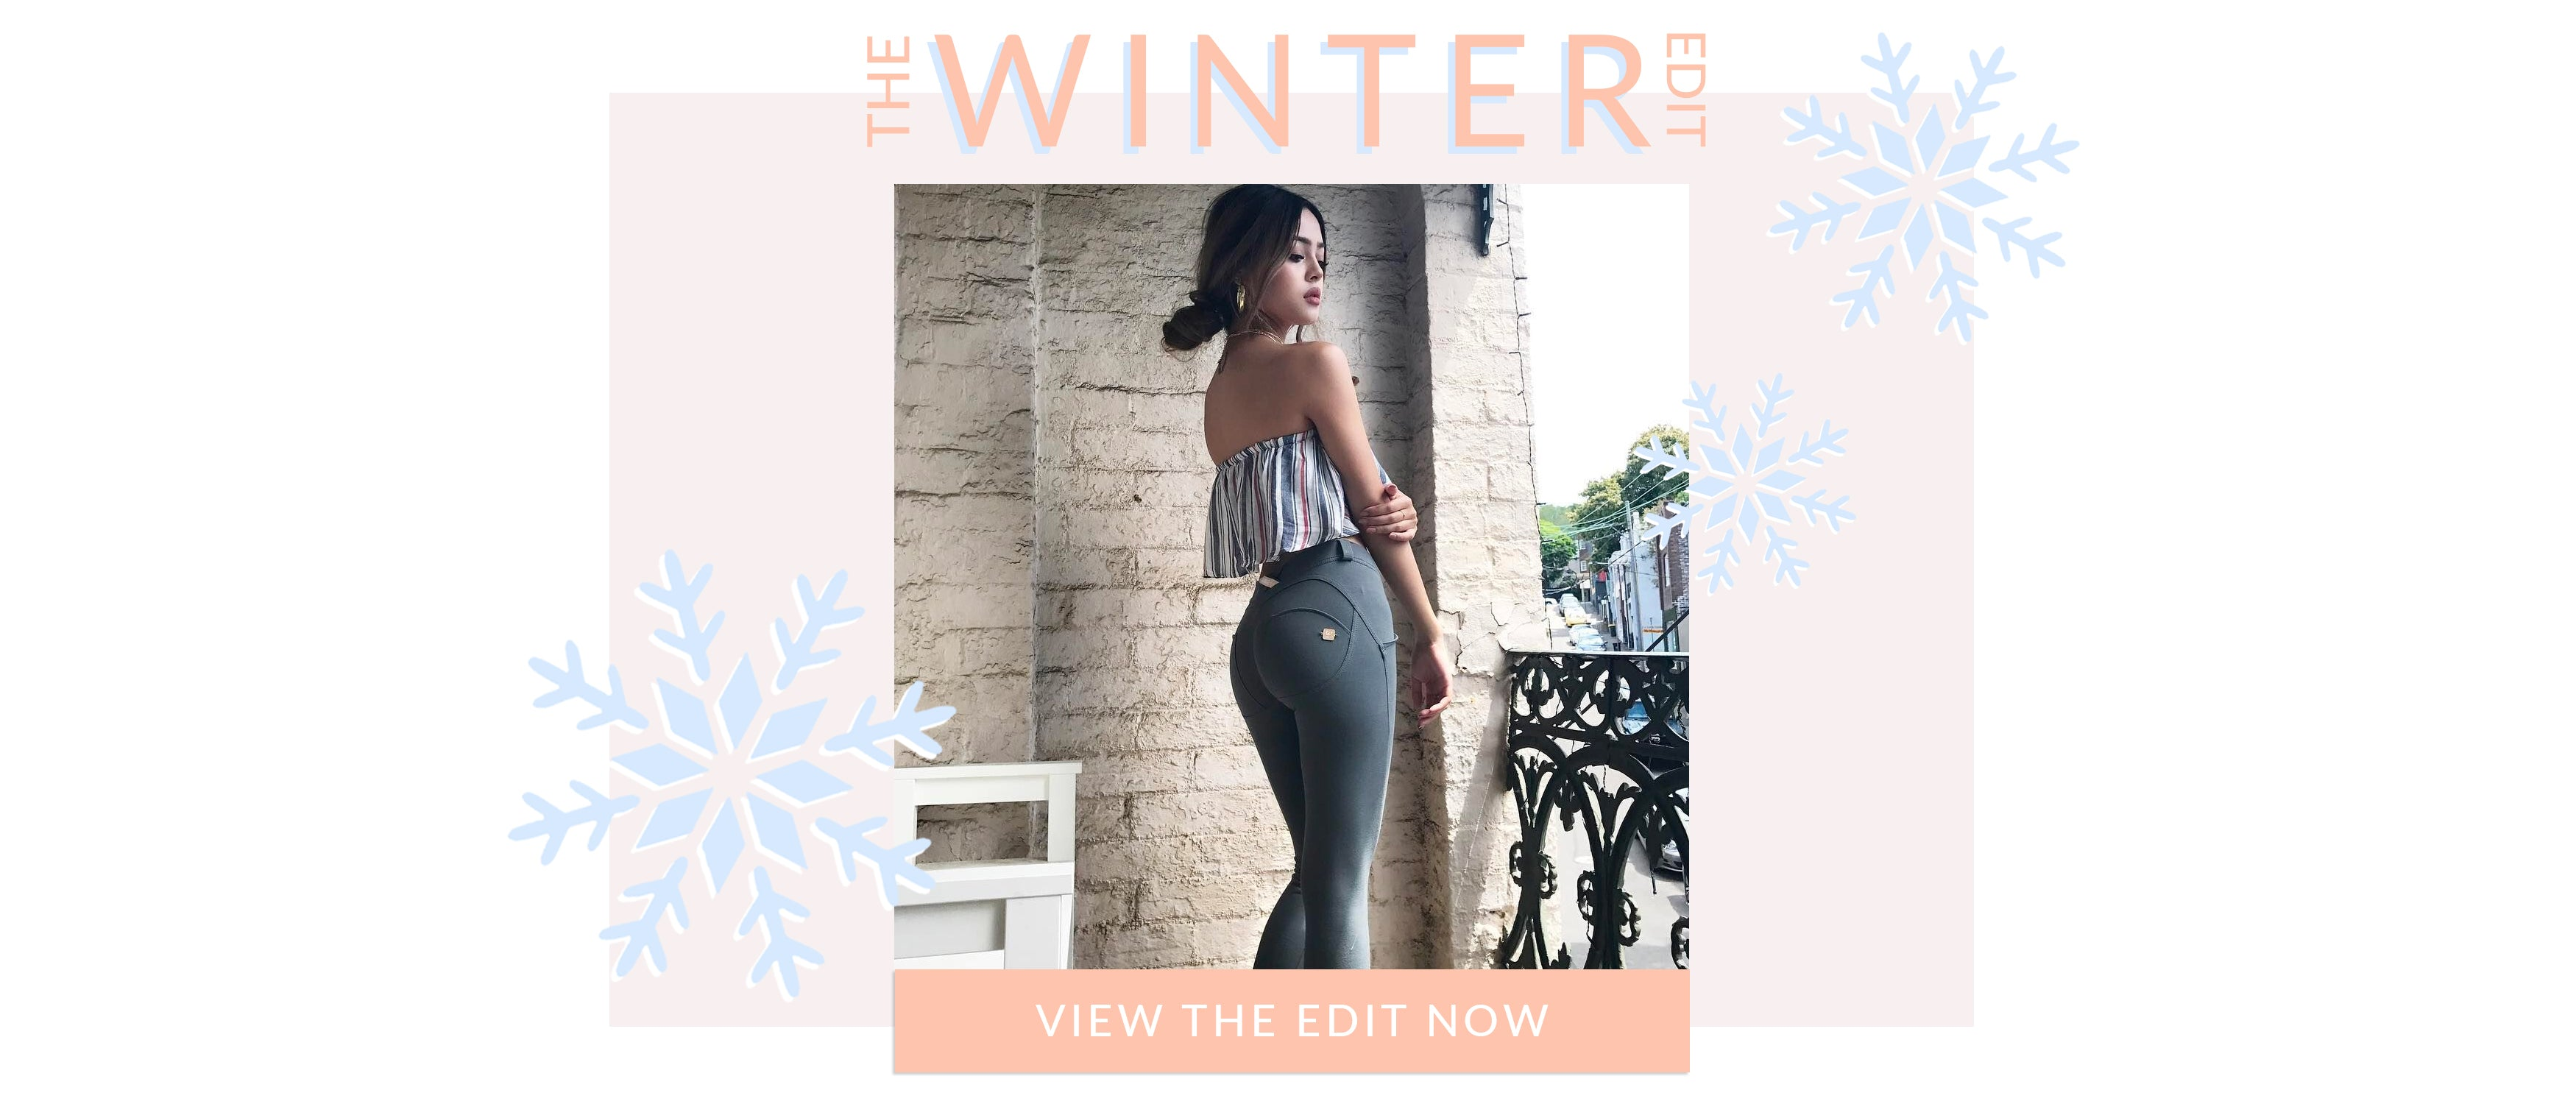 The winter edit. View the edit now